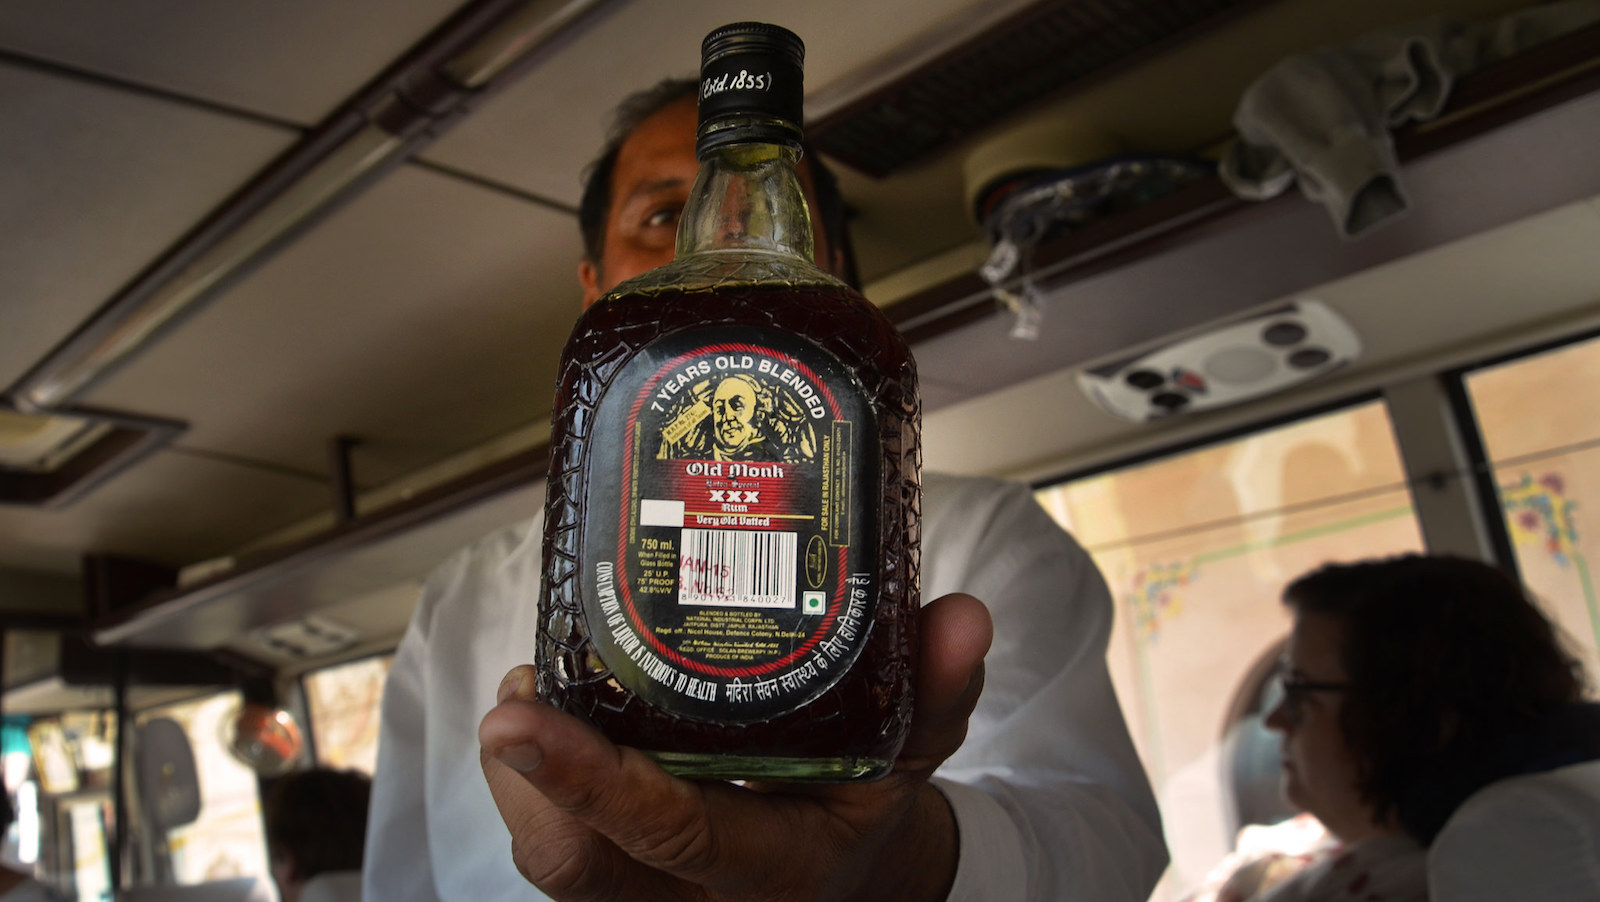 It is not impossible for Old Monk to reclaim lost ground.